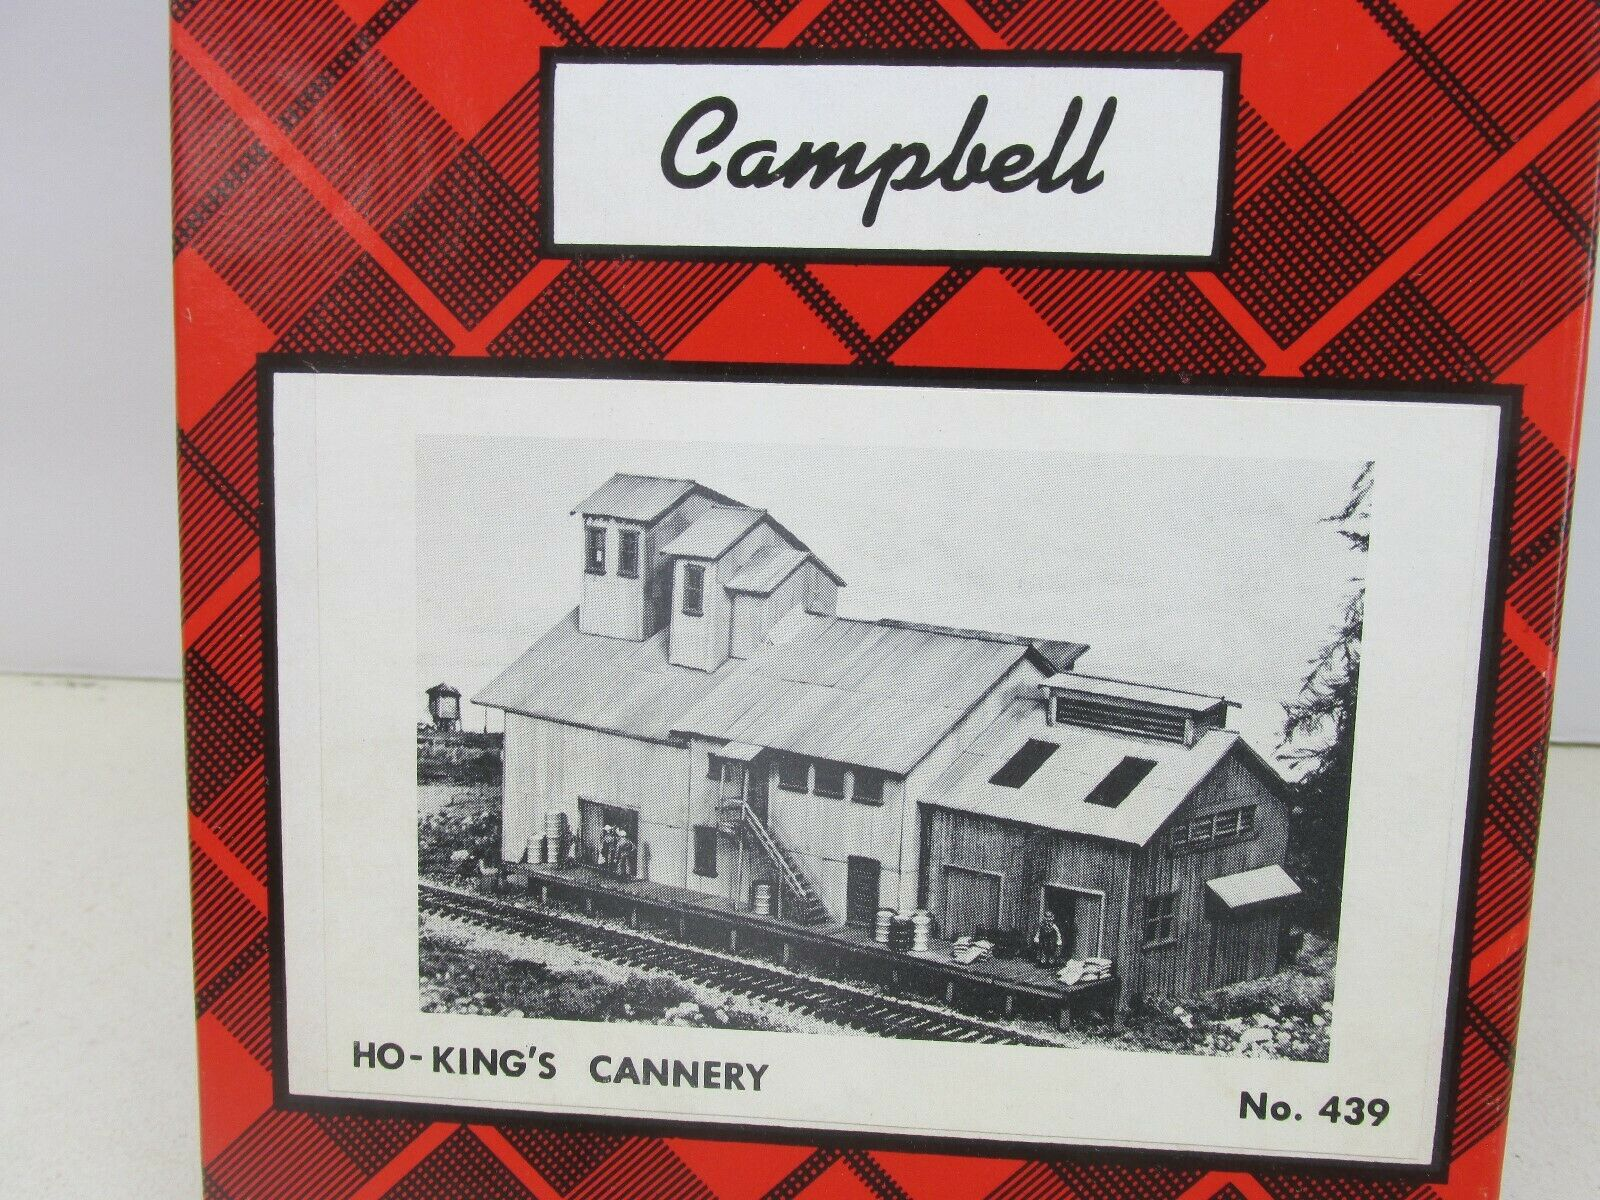 CAMPBELL SCALE MODELS  KING'S CANNERY BUILDING KIT  HO SCALE